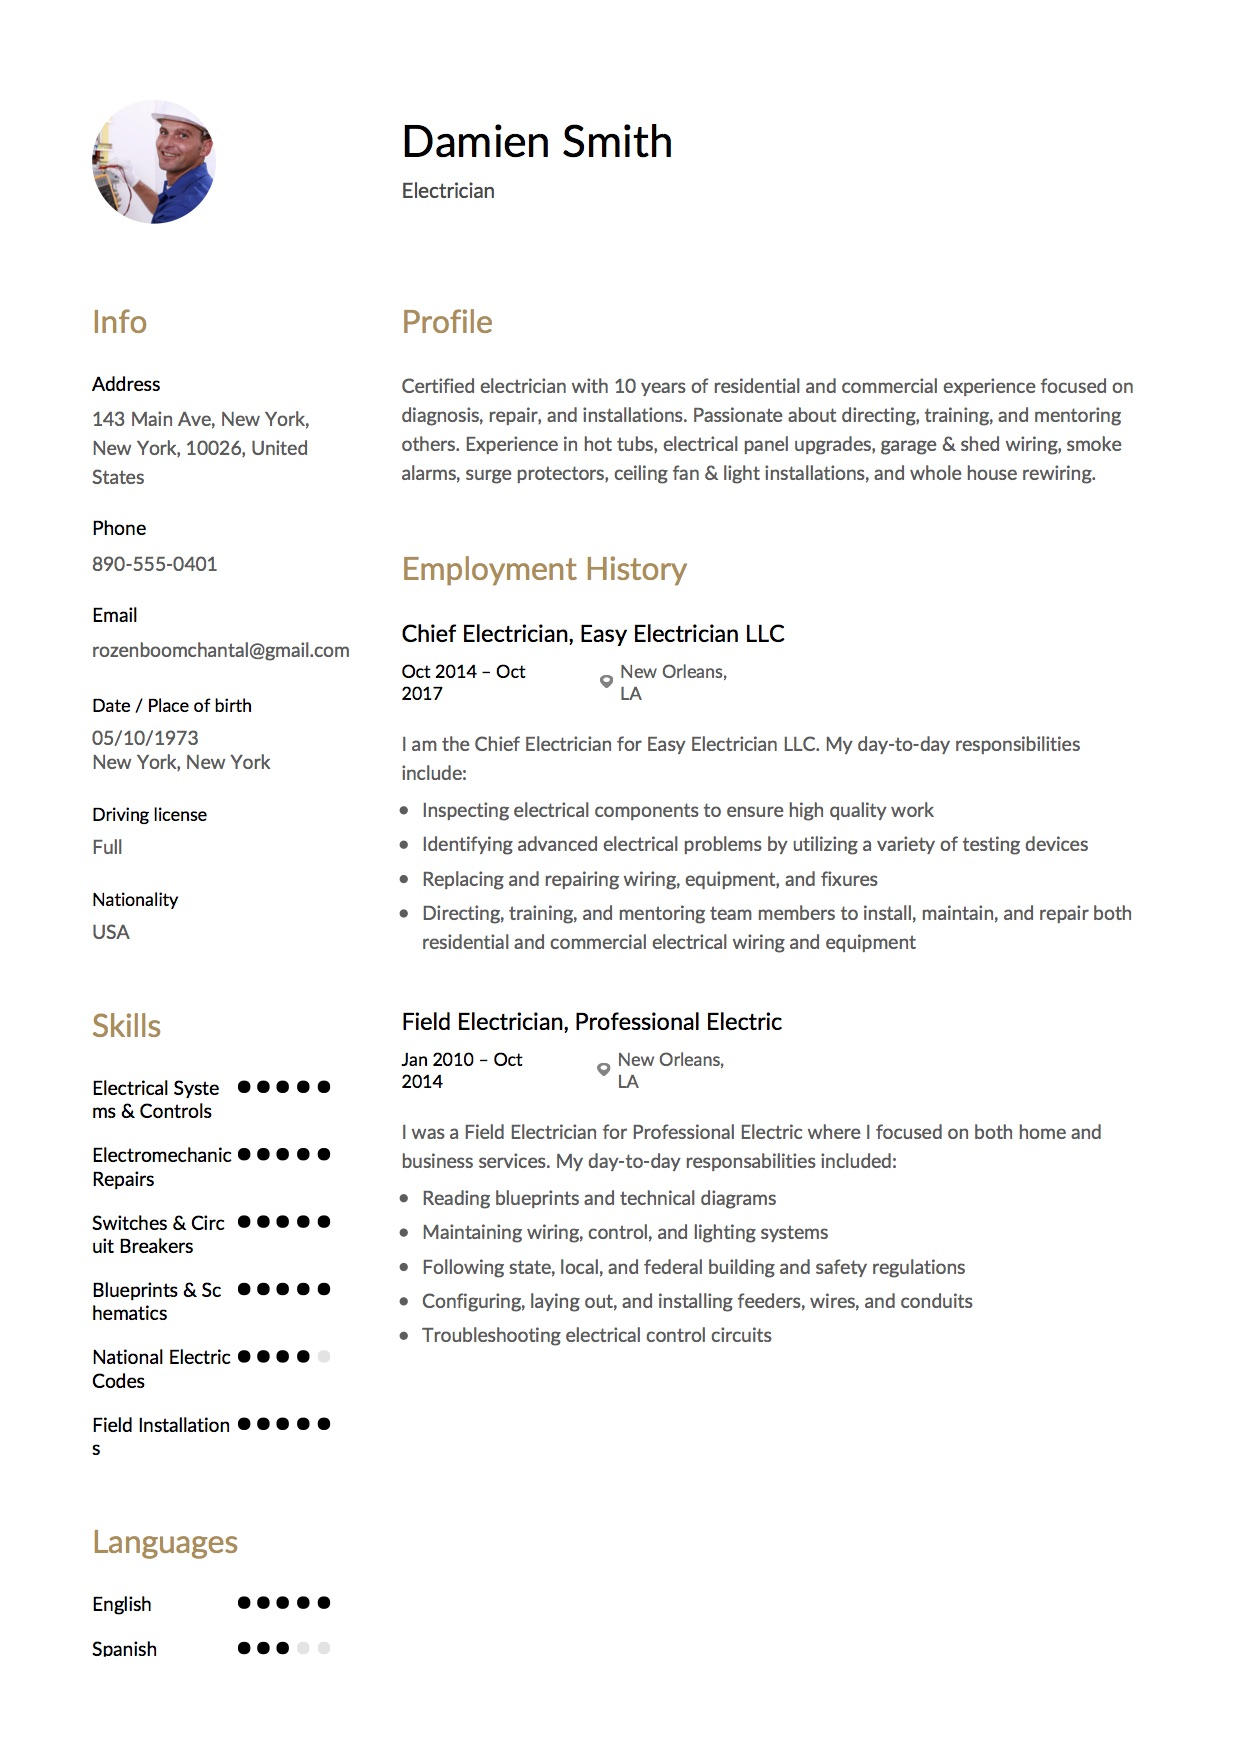 12 Electrician Resume Sample(s) - 2018 (Free Downloads)